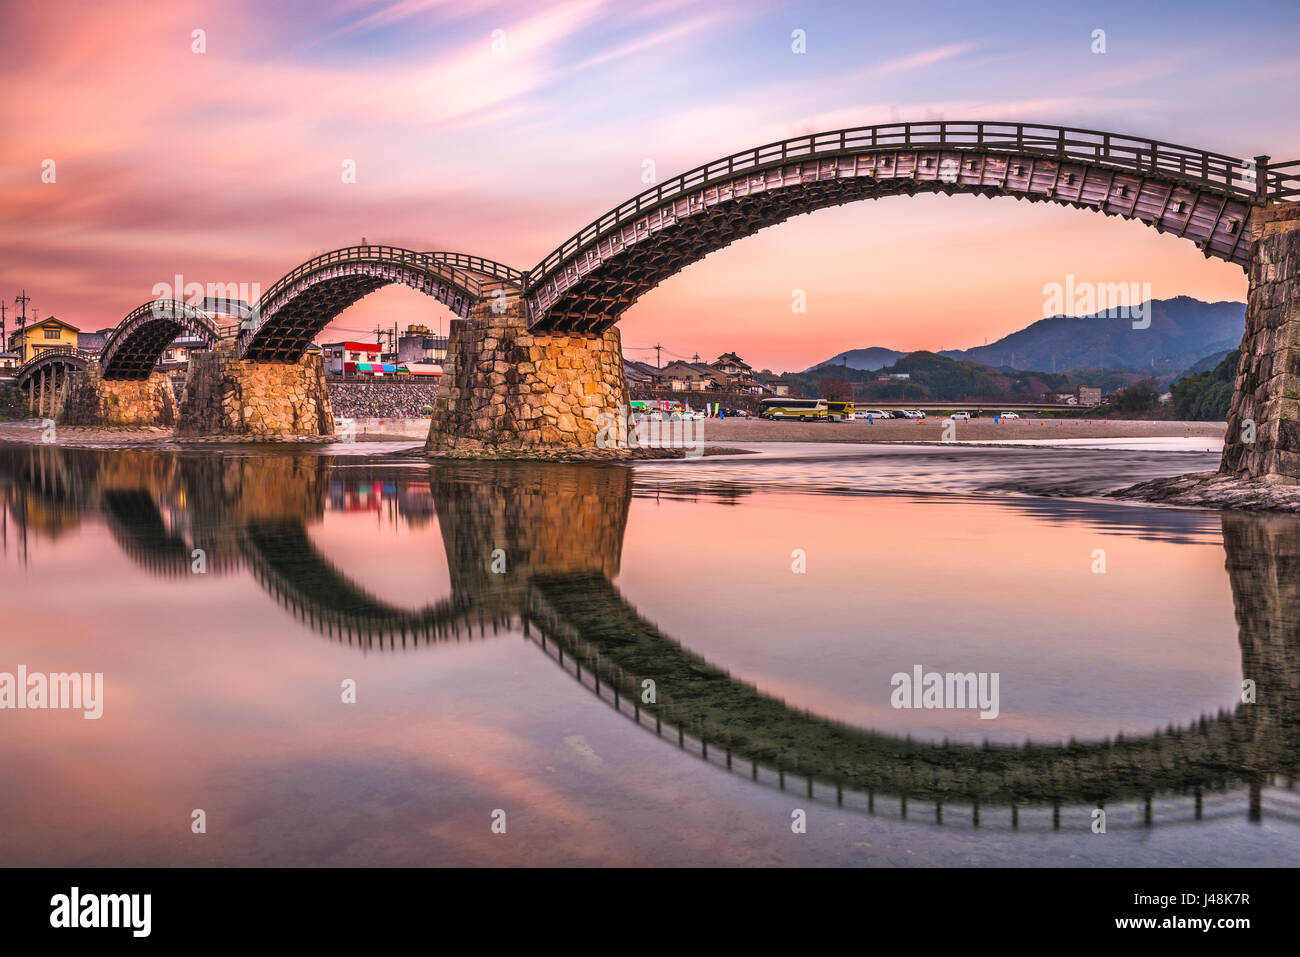 Iwakuni, Hiroshima, Japan at Kintaikyo Bridge at dusk. - Stock Image